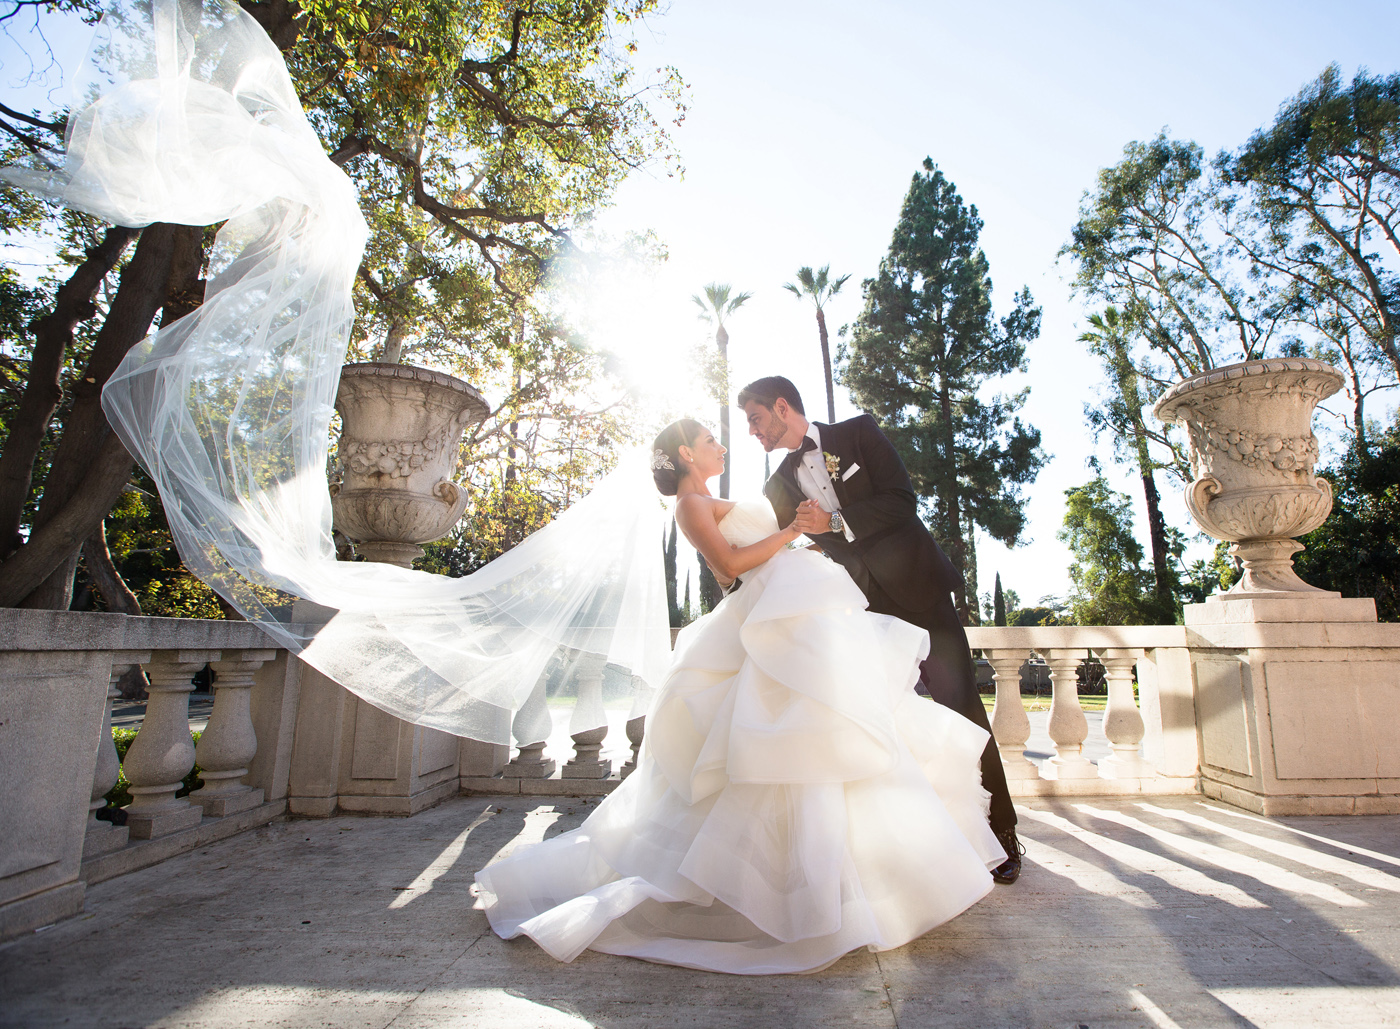 072DukePhotography_DukeImages_weddings_losangeles.jpg